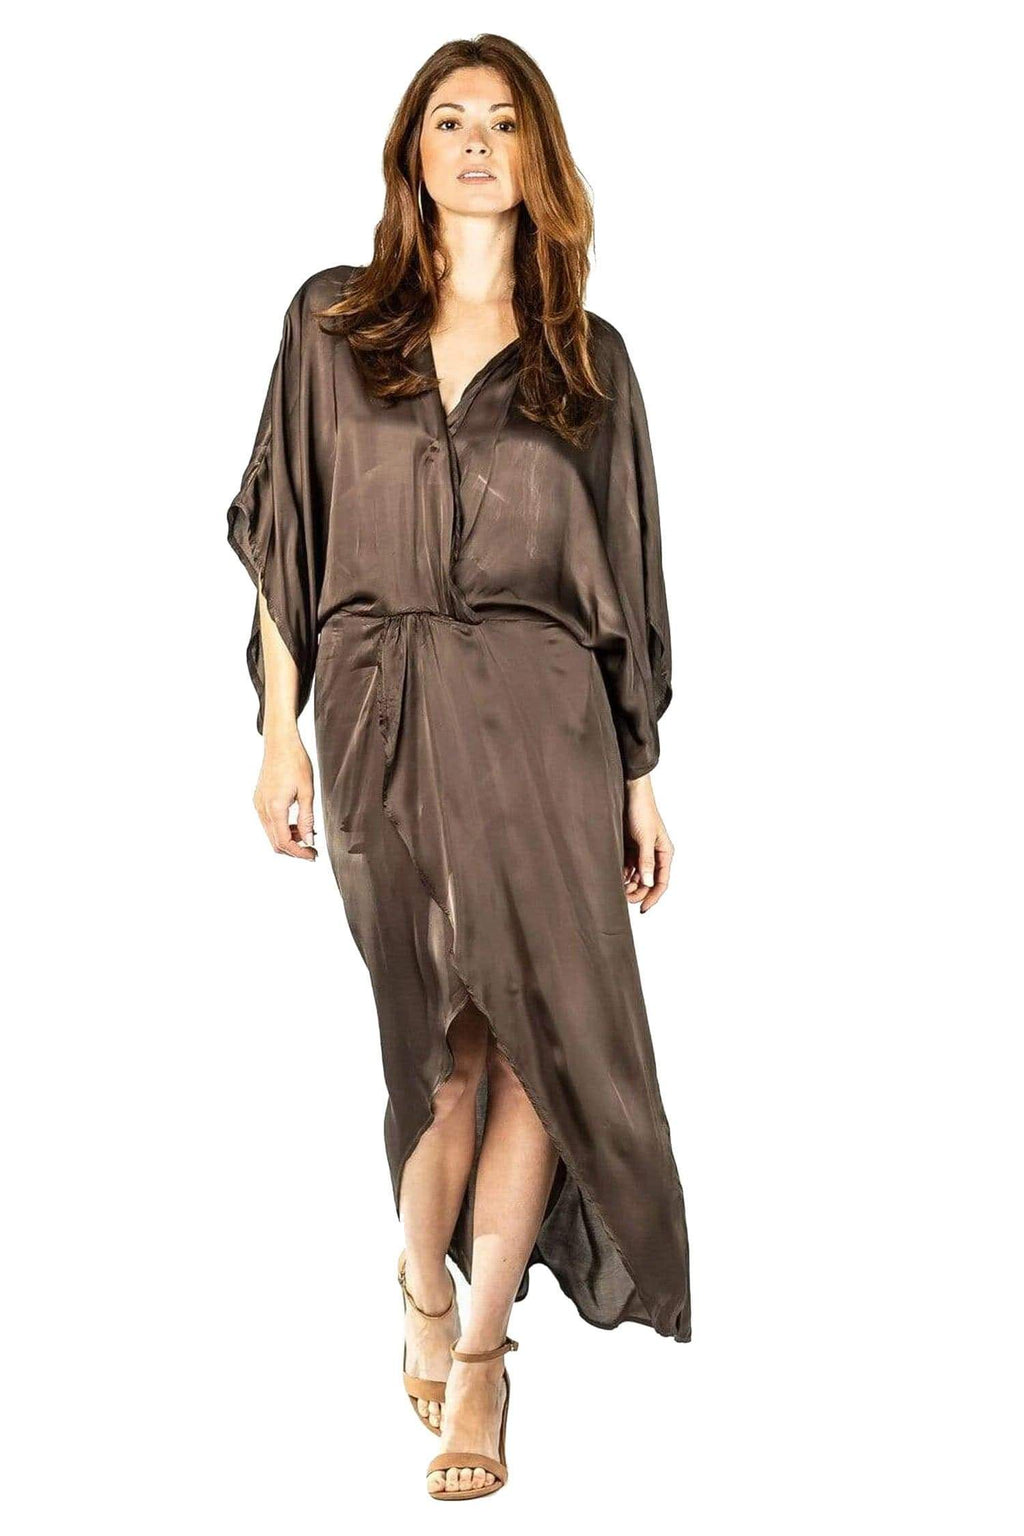 shop-sofia Chocolate Melania Dress Sofia Collections Italian Silk Linen Satin